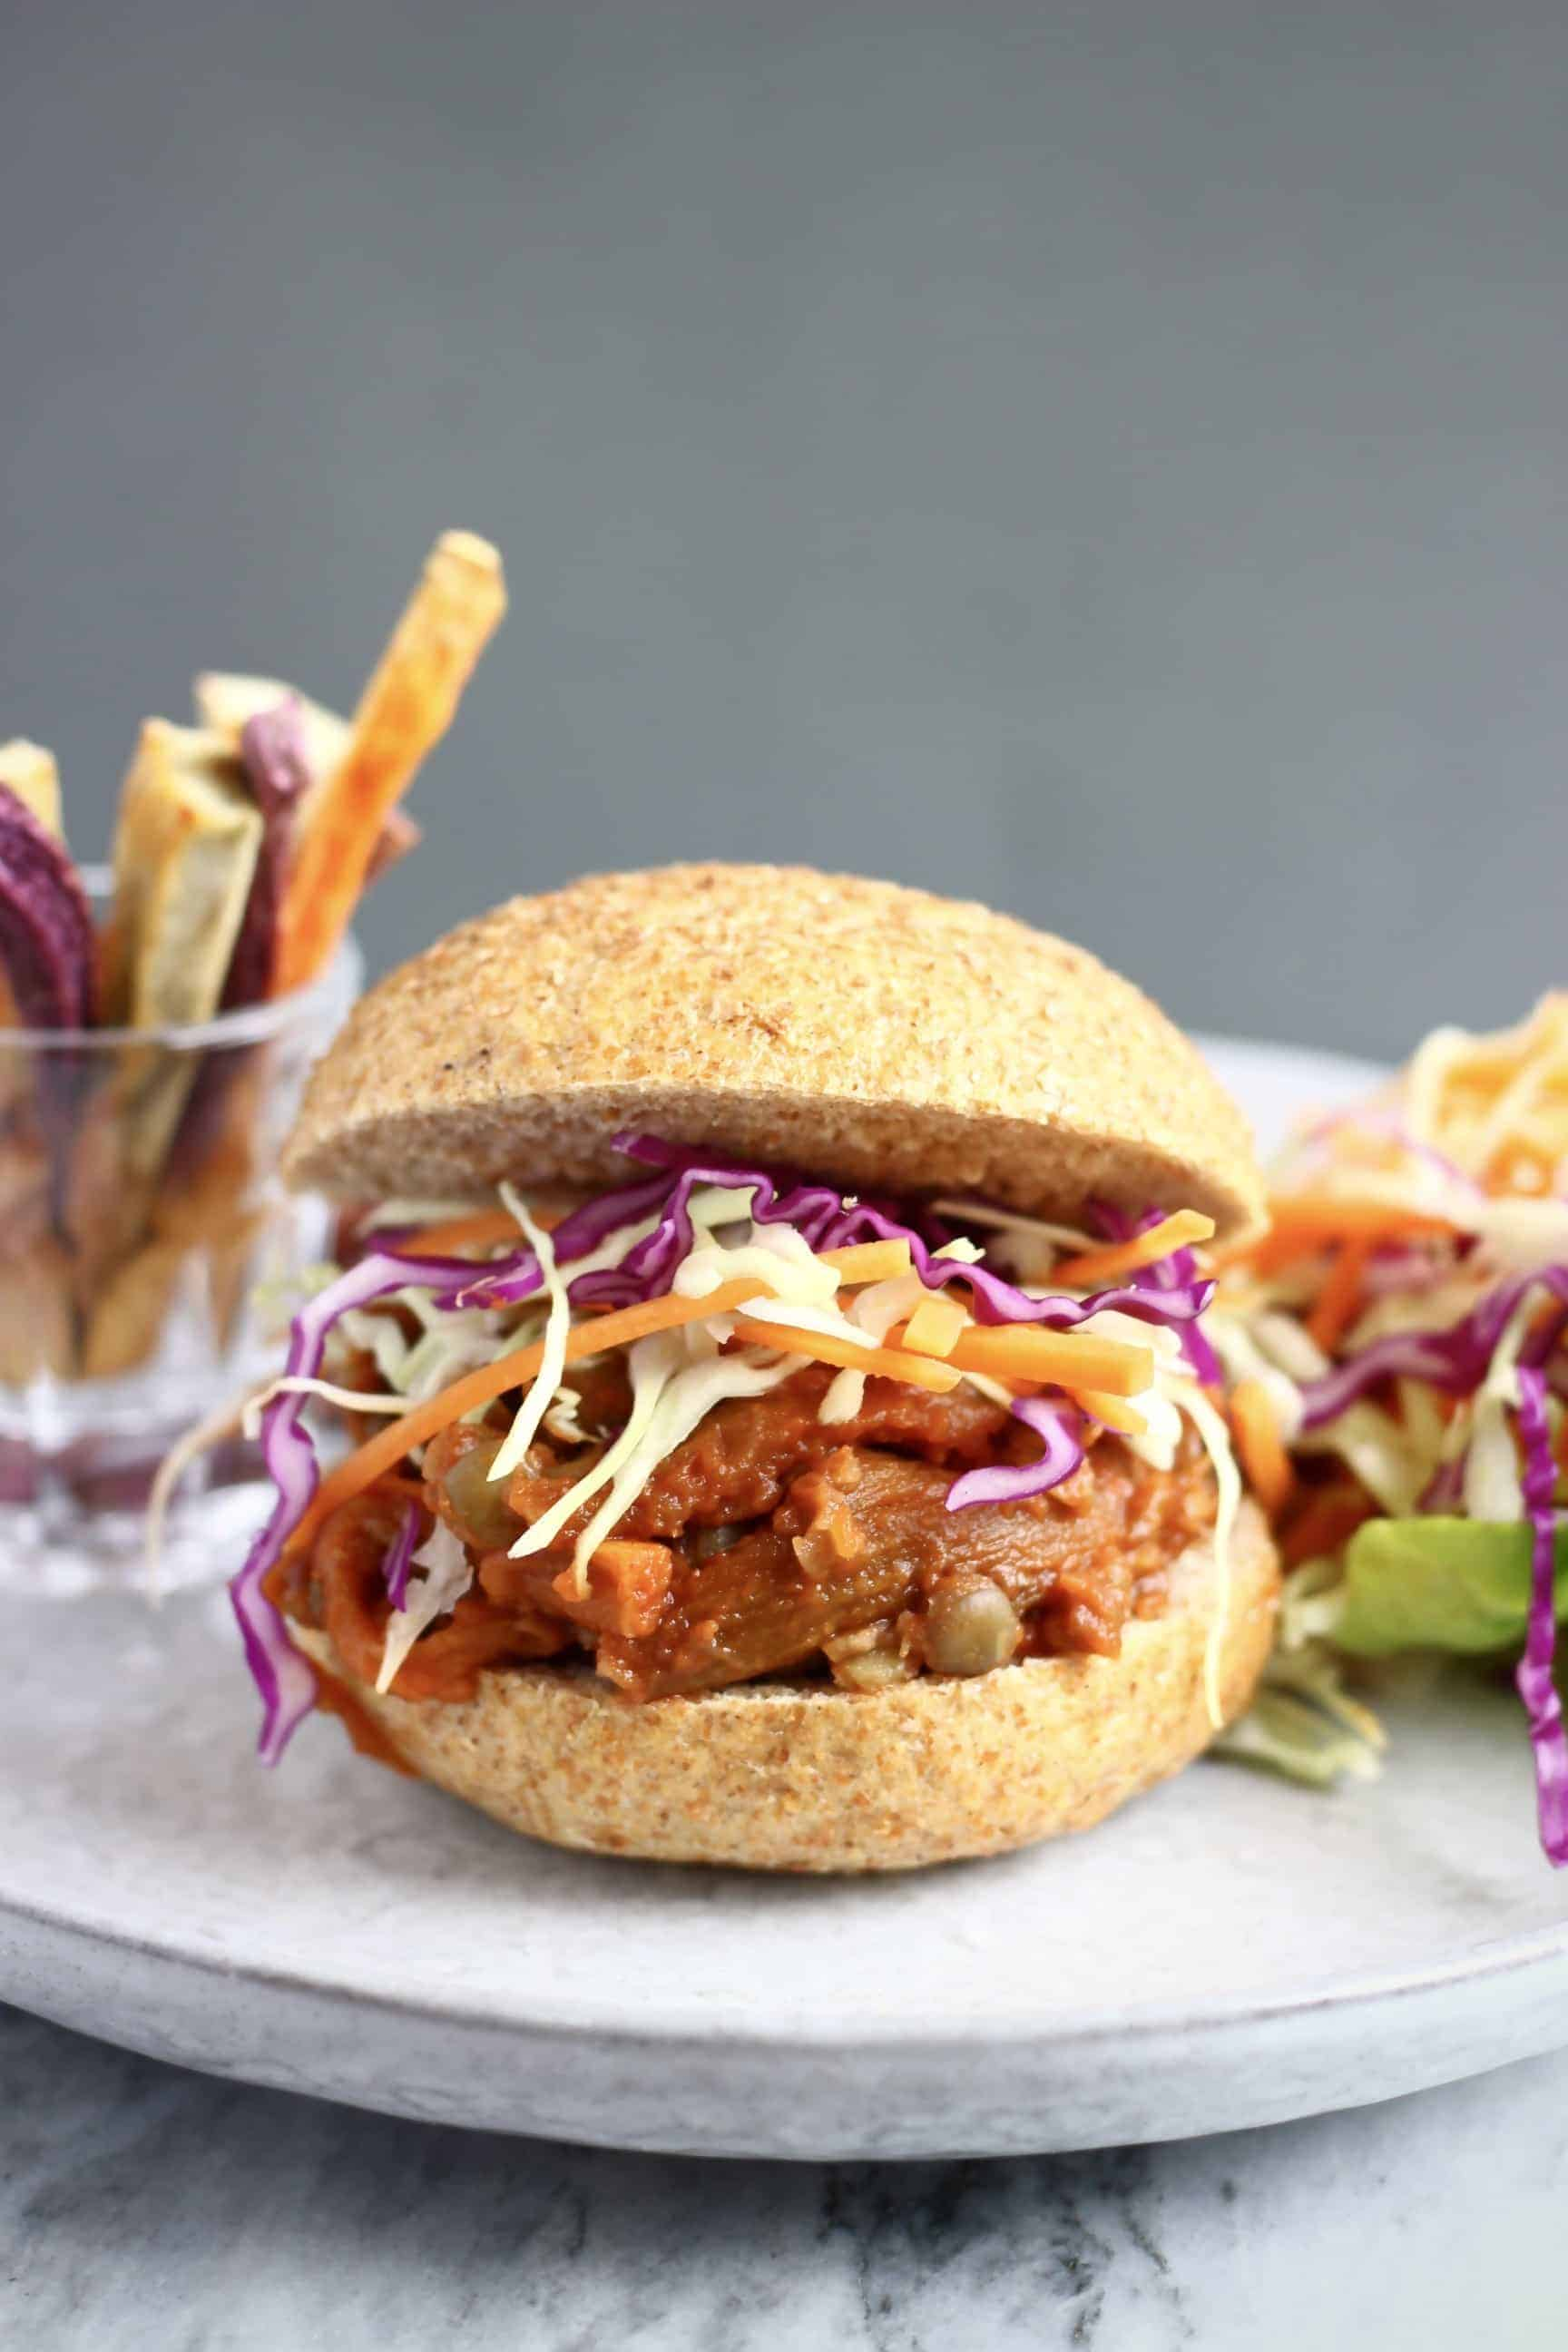 A vegan eggplant pulled pork burger with coleslaw and sweet potato fries and salad in the background